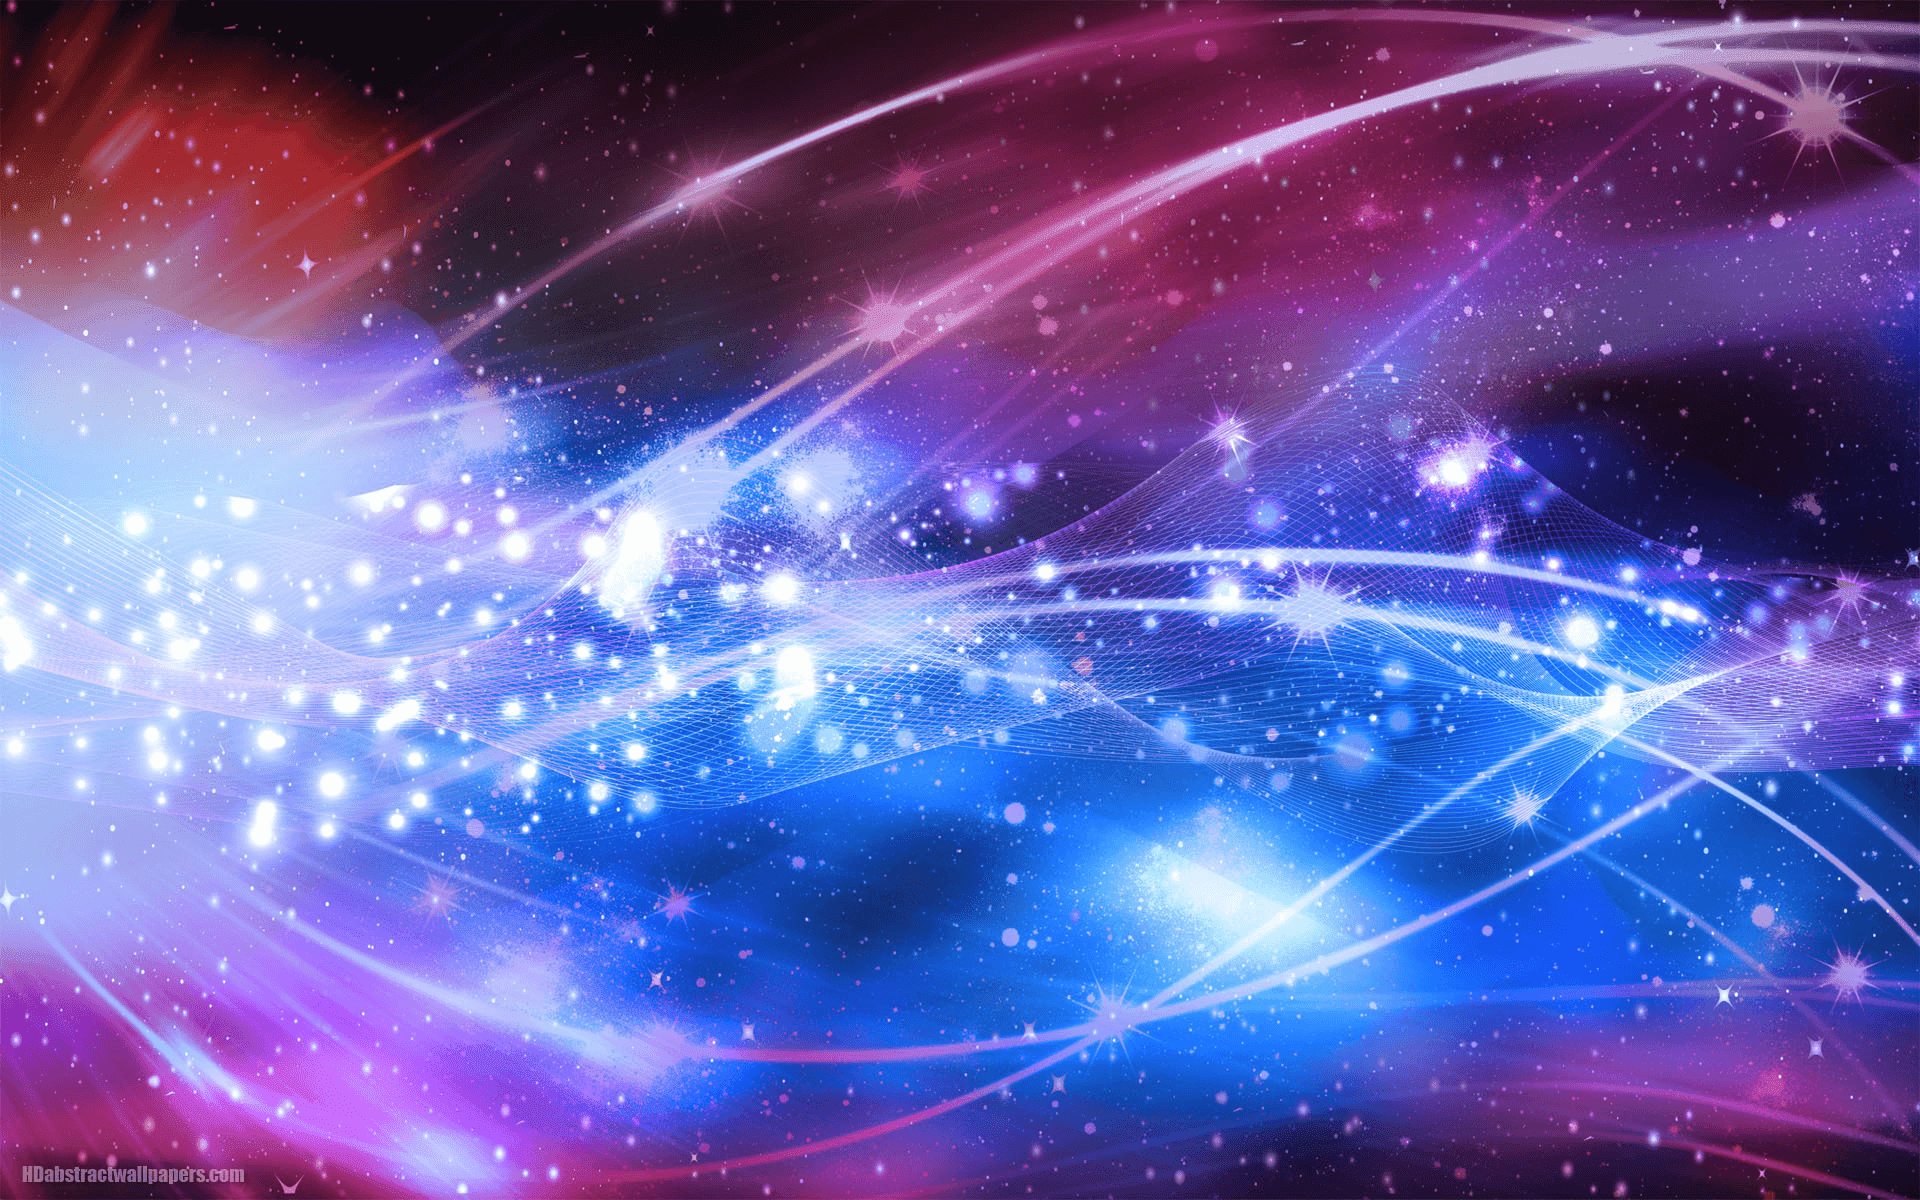 wallpapers hd abstract colors - photo #17